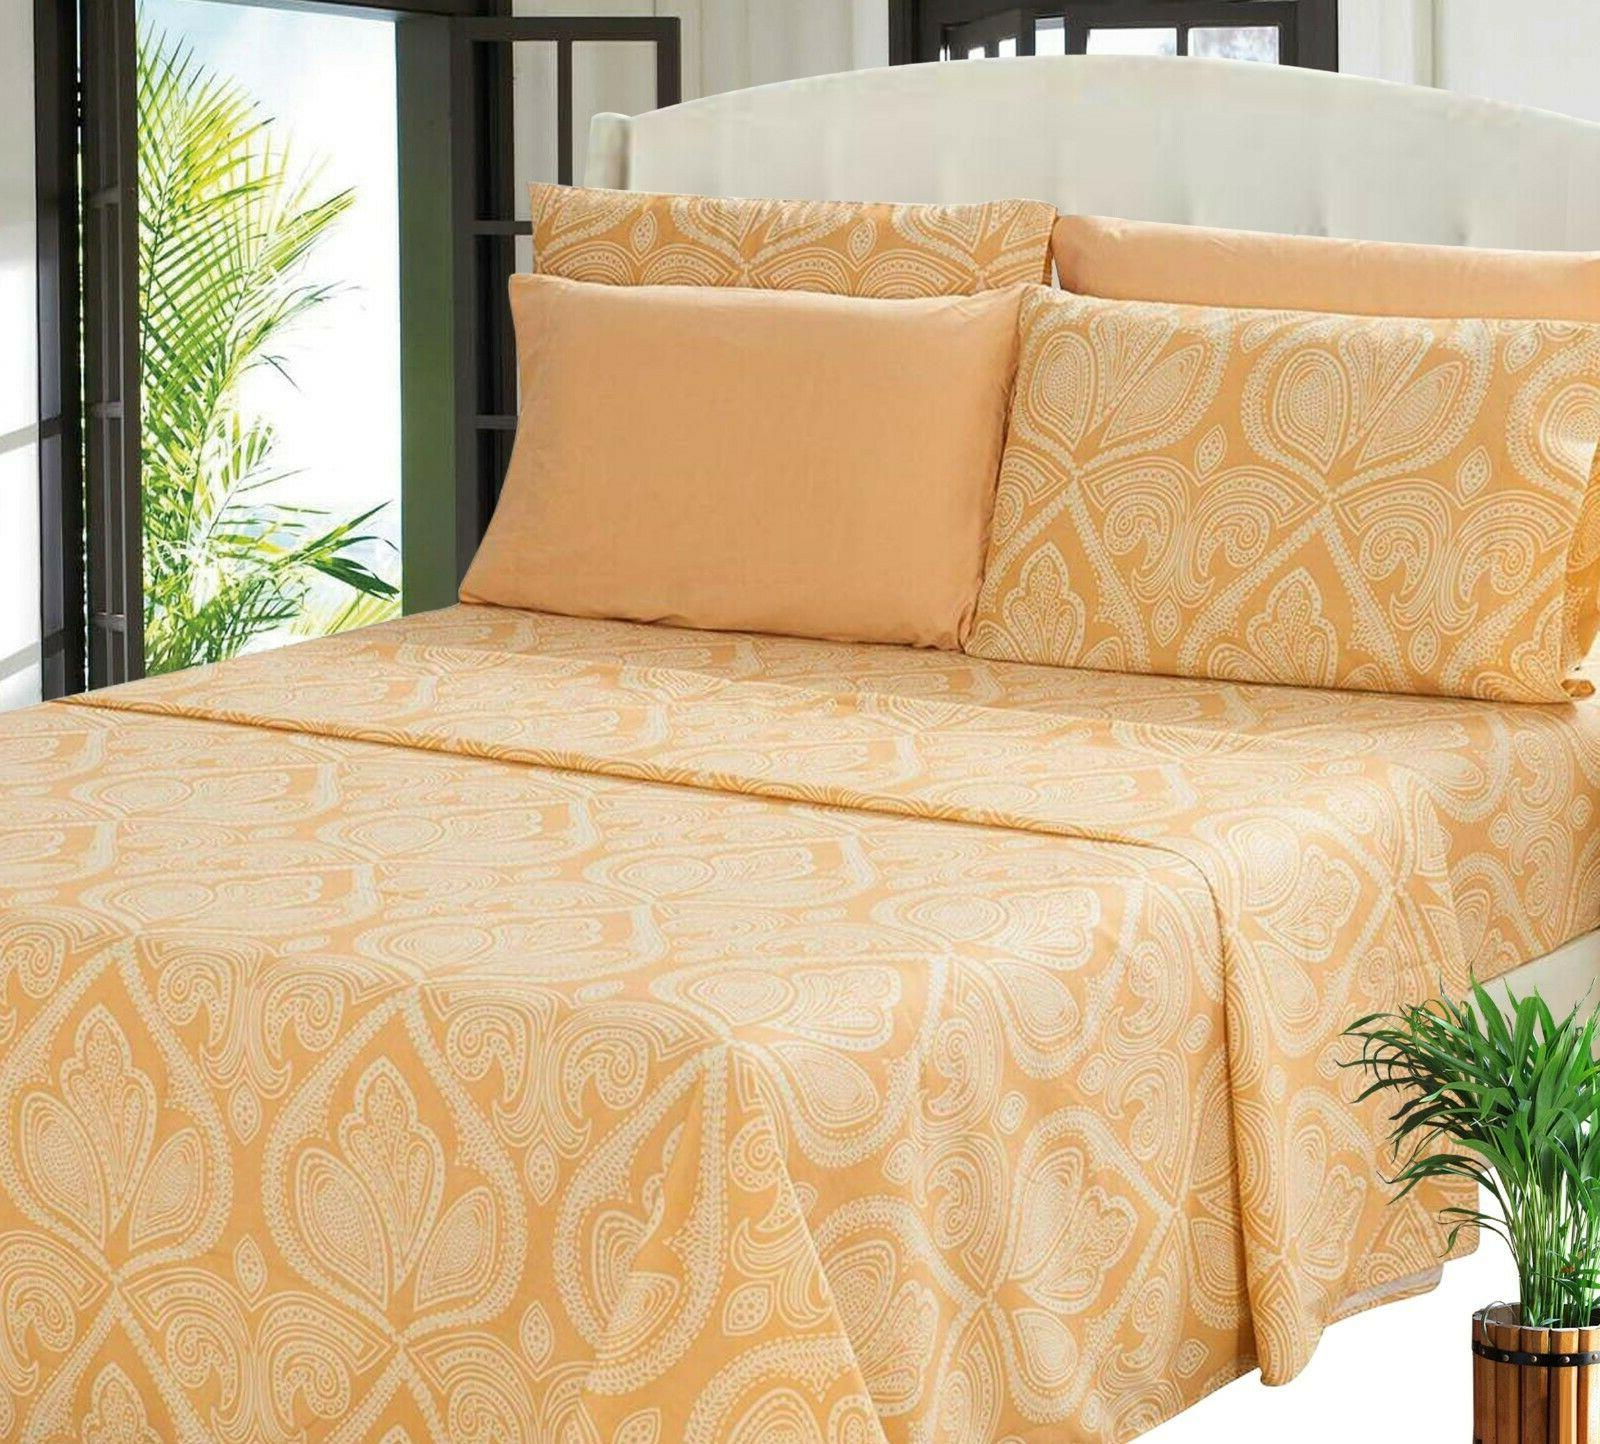 6 Deep soft Bed Microfiber Sizes